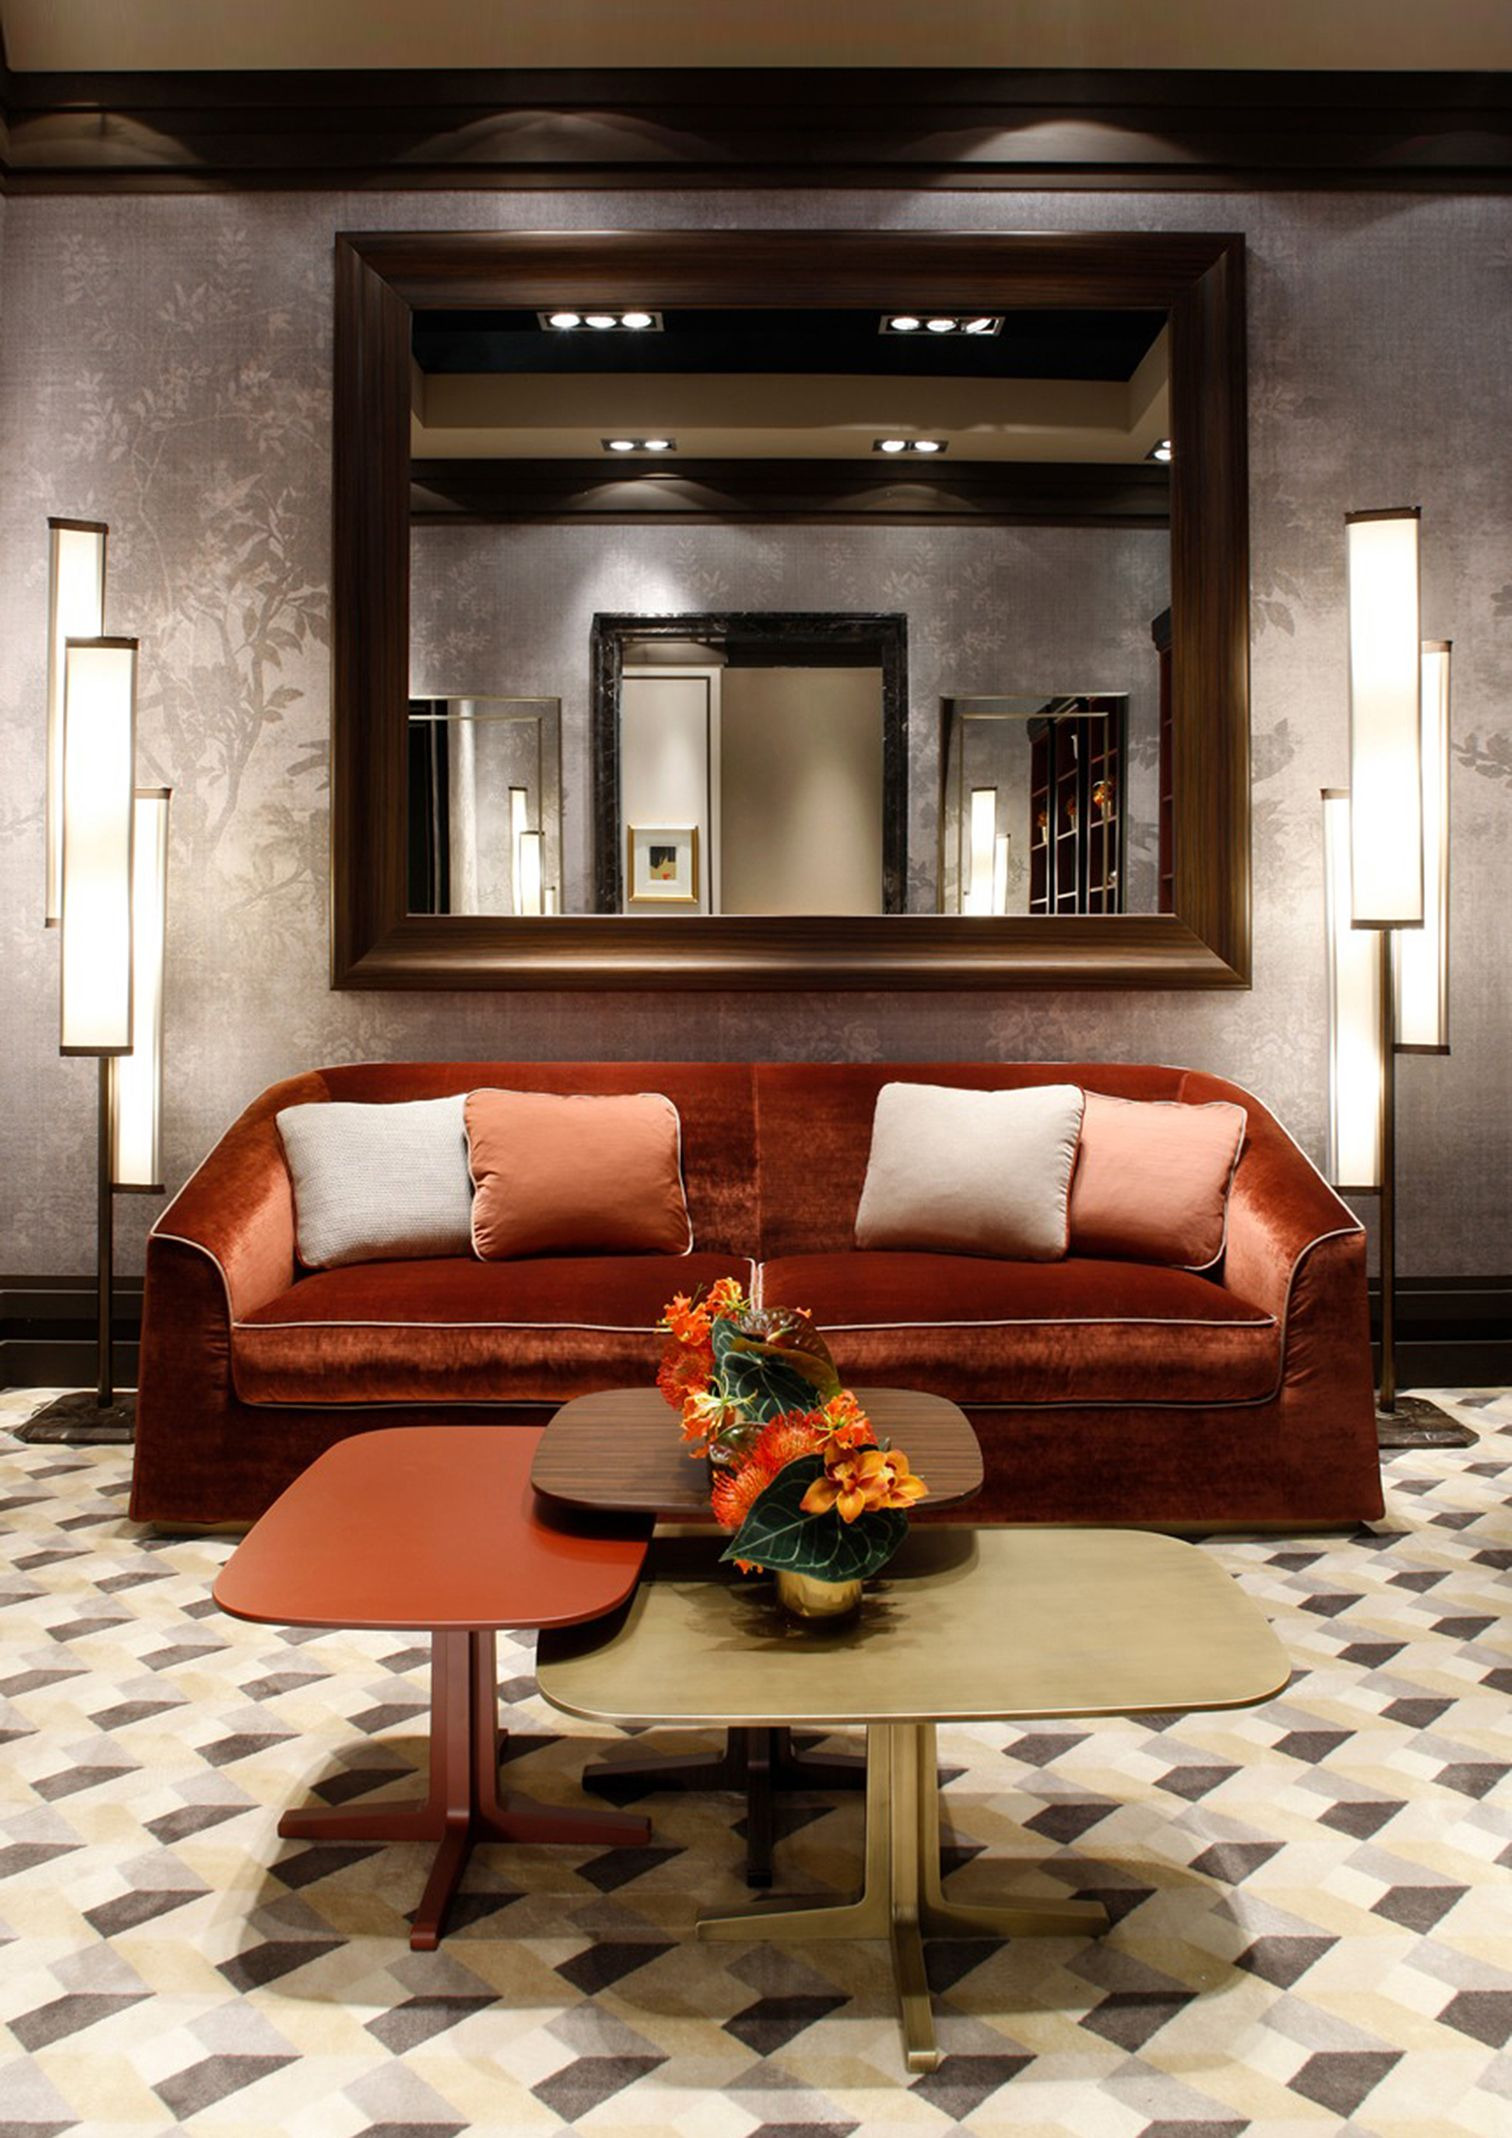 Luis coffee table by Oasis, with Cocteau mirror, and Flower lamps (design by Massimiliano Raggi).